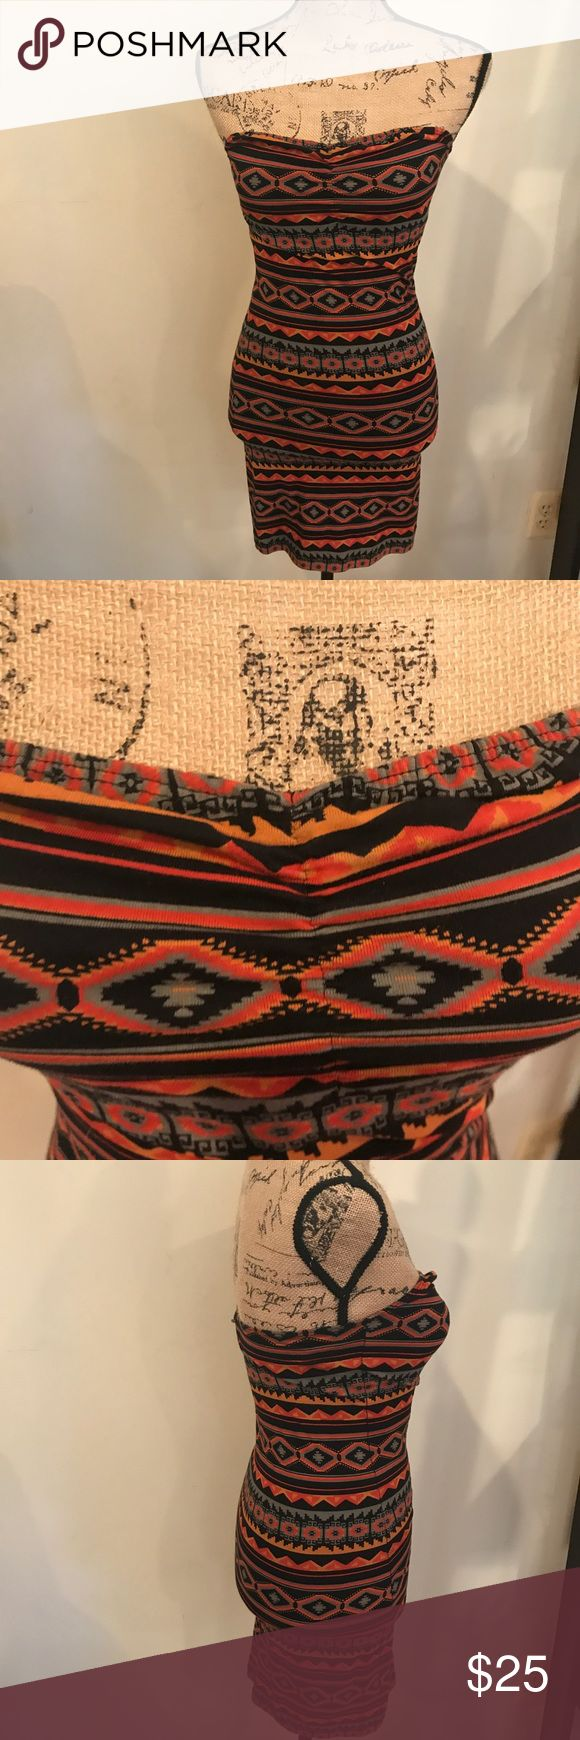 Obey Propaganda Aztec Bodycon Strapless Dress Excellent condition, barely worn! Bold Aztec print that accents your body in this Bodycon dress. Wear this with a jean jacket to make it casual or dress it up with heels! Obey Dresses Strapless